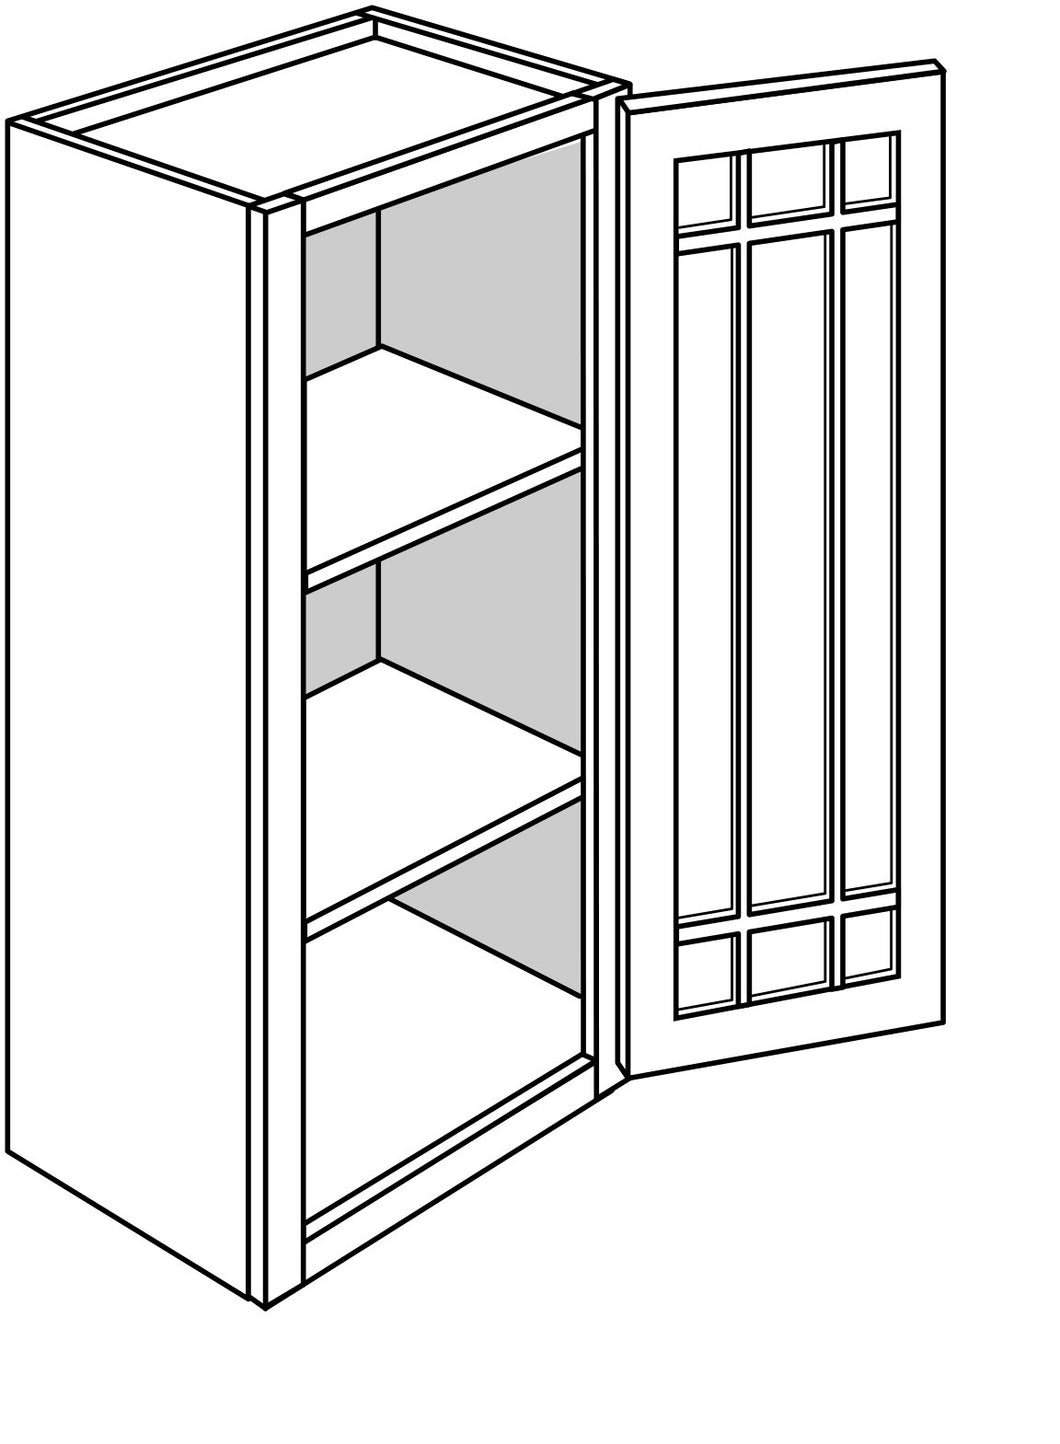 DOVER WALL CABINETS WITH GLASS DOORS: 36